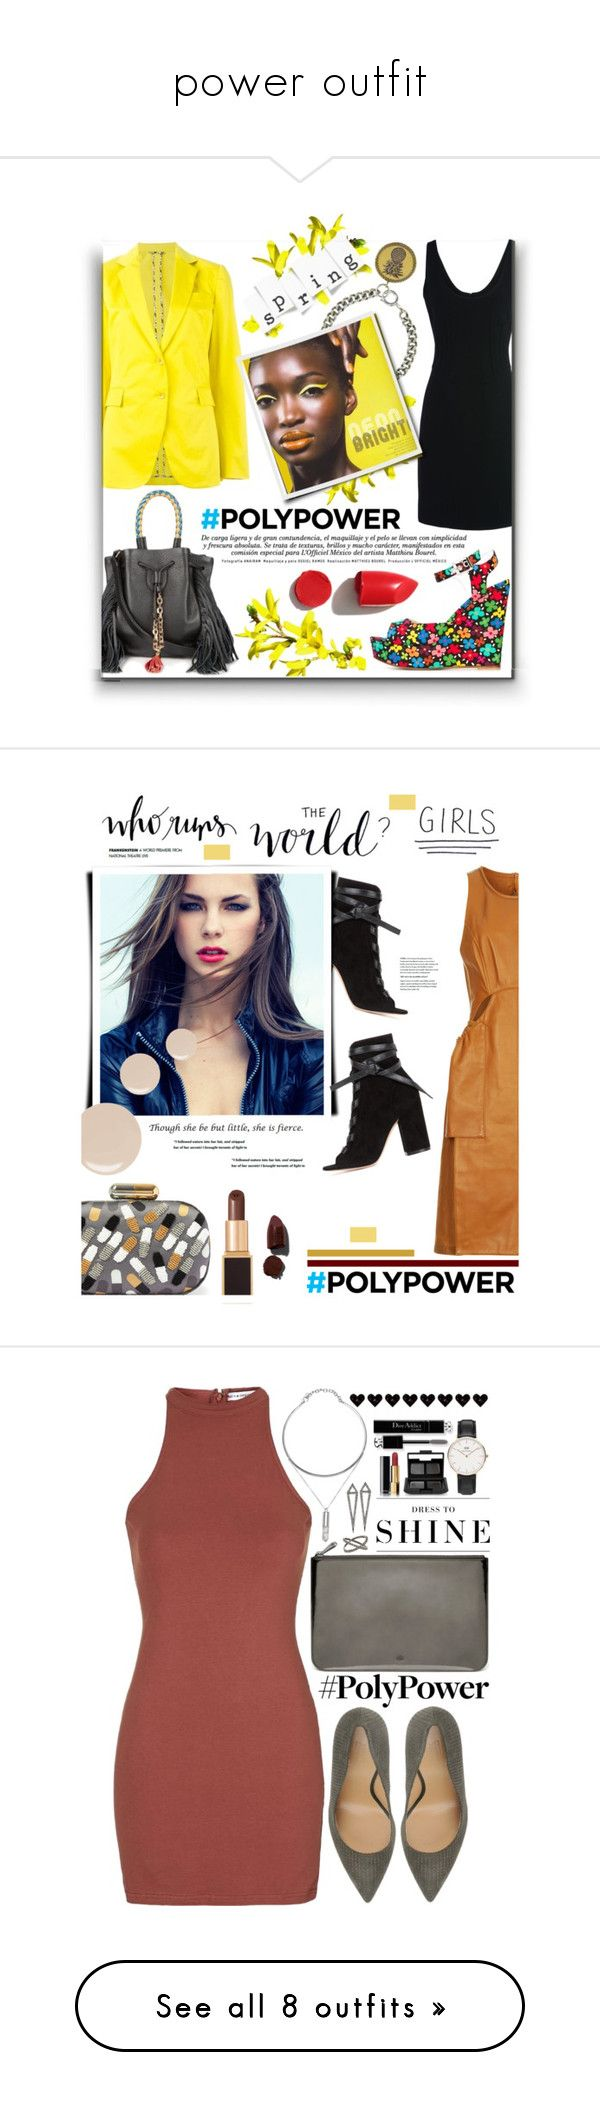 """""""power outfit"""" by love2sagittarius ❤ liked on Polyvore featuring Etro, Au Jour Le Jour, Moschino, Alexa De Castilho, Sara Battaglia, NARS Cosmetics, PolyPower, 3.1 Phillip Lim, Gianvito Rossi and Sarah's Bag"""